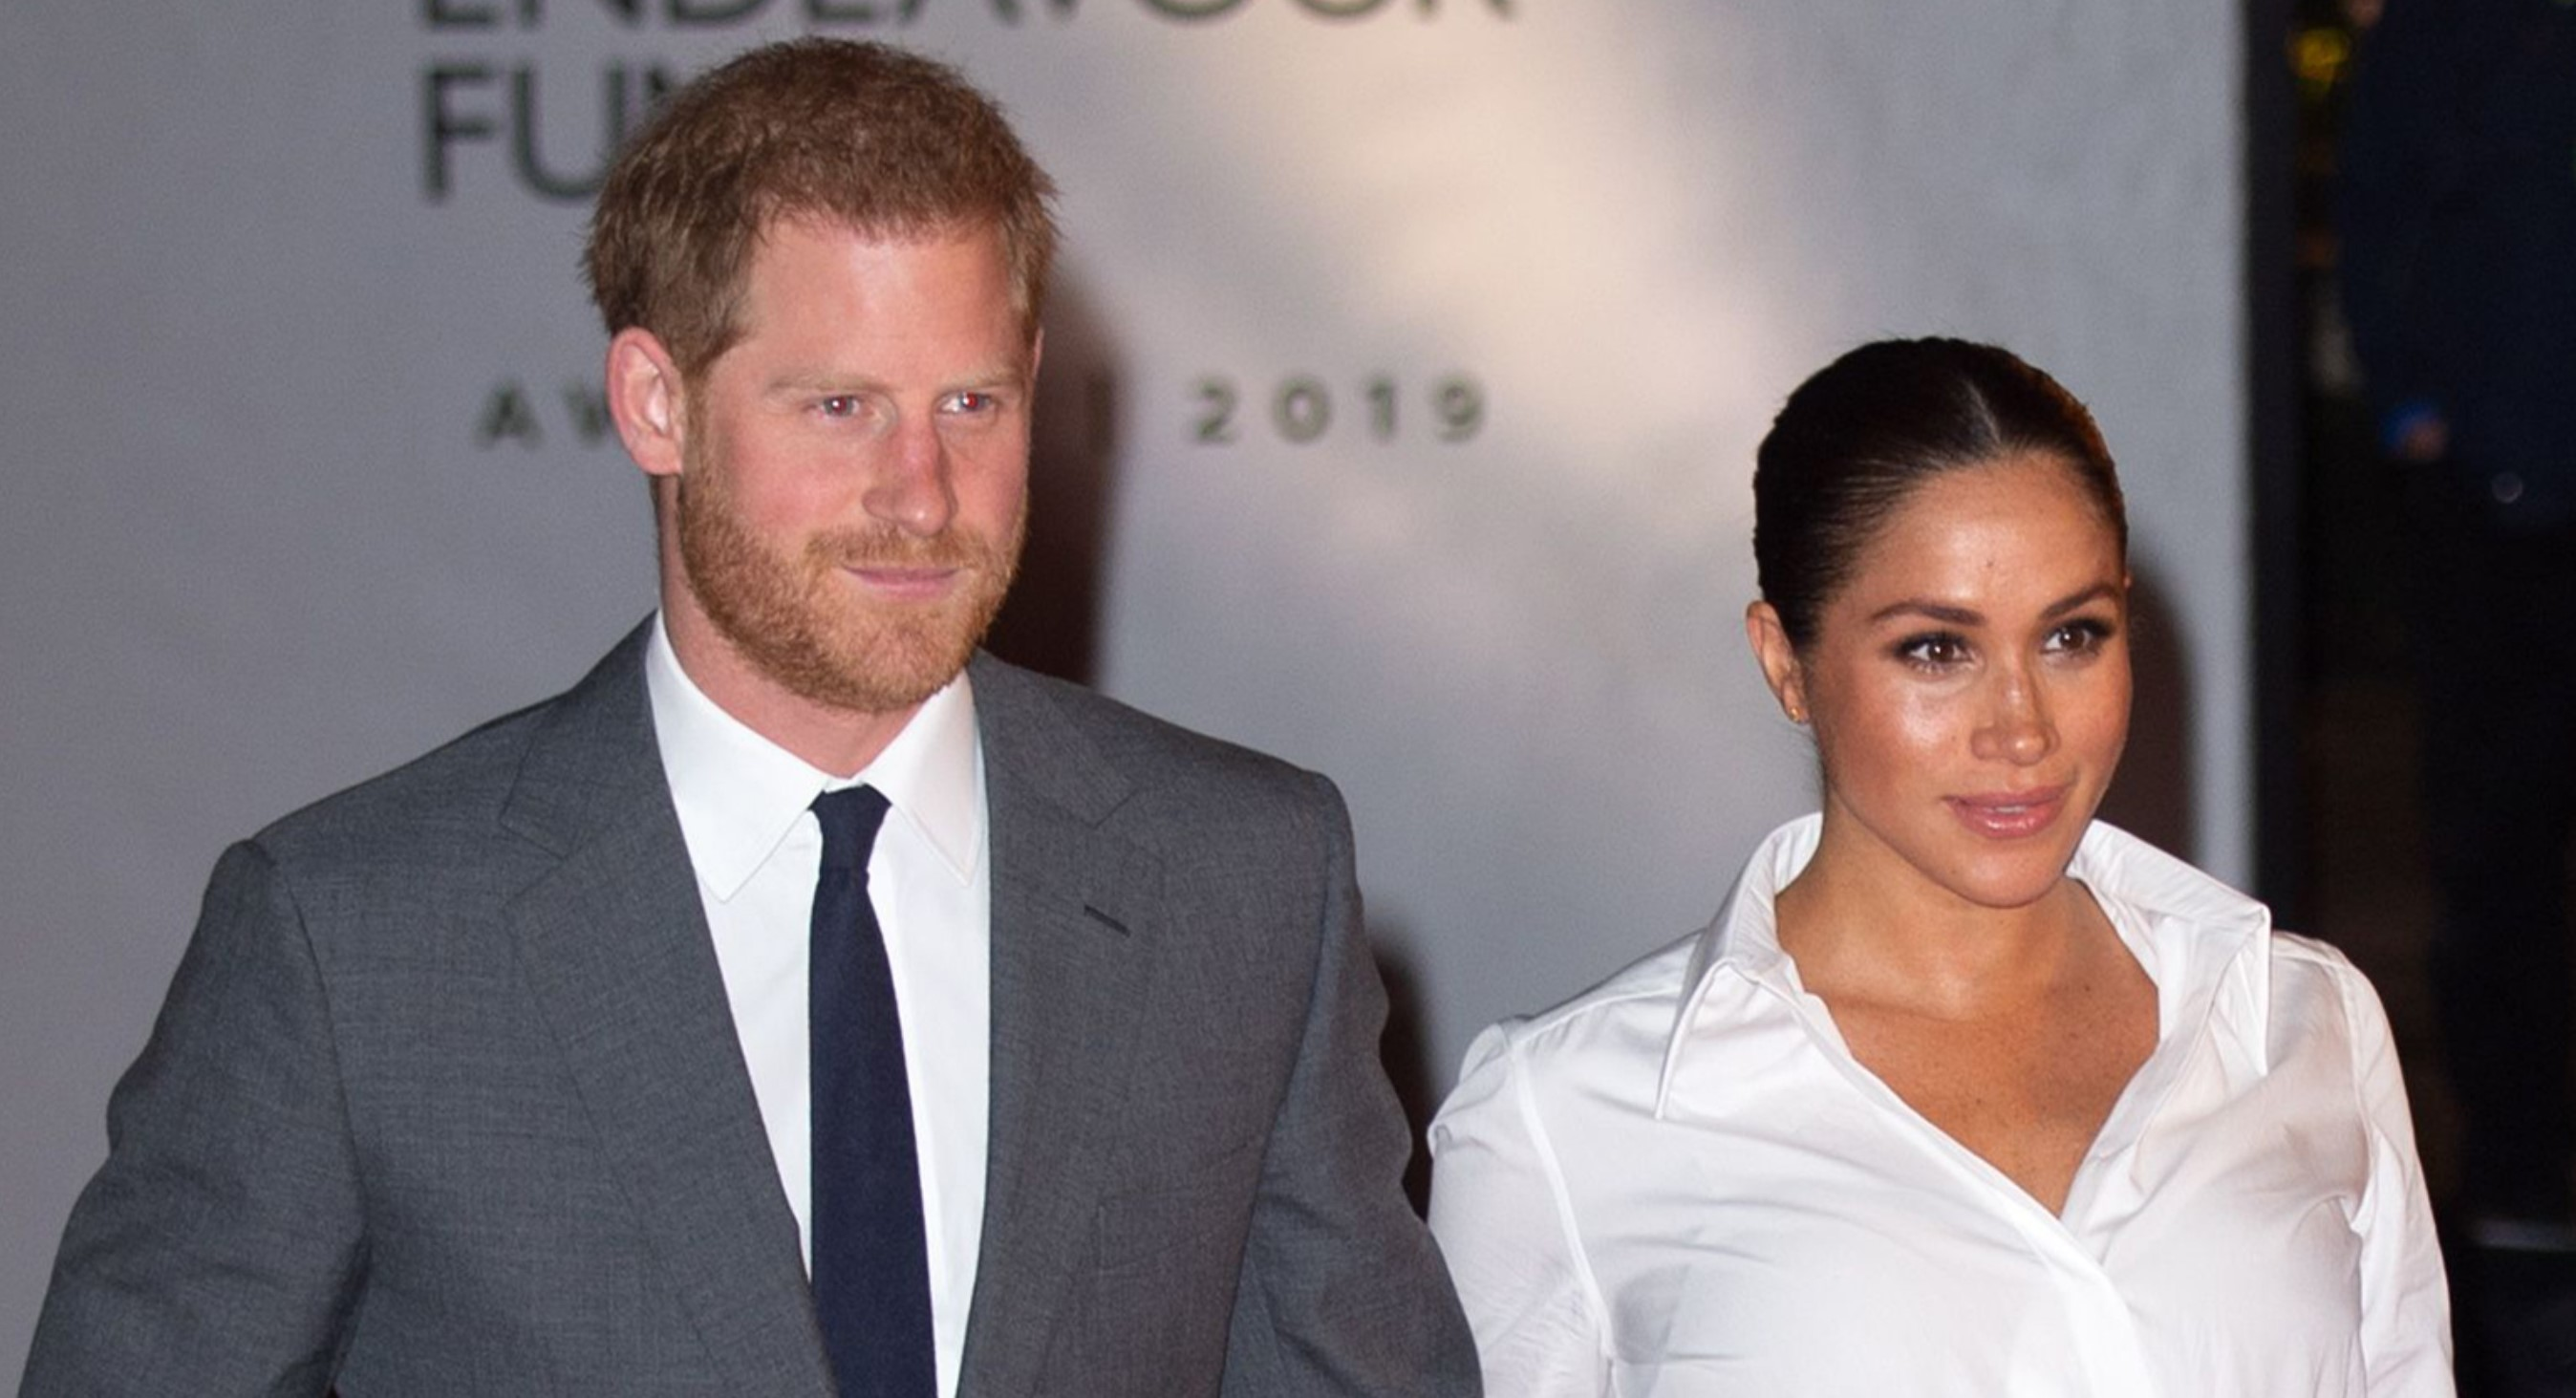 Harry and Meghan share beautiful wedding pics to celebrate first anniversary